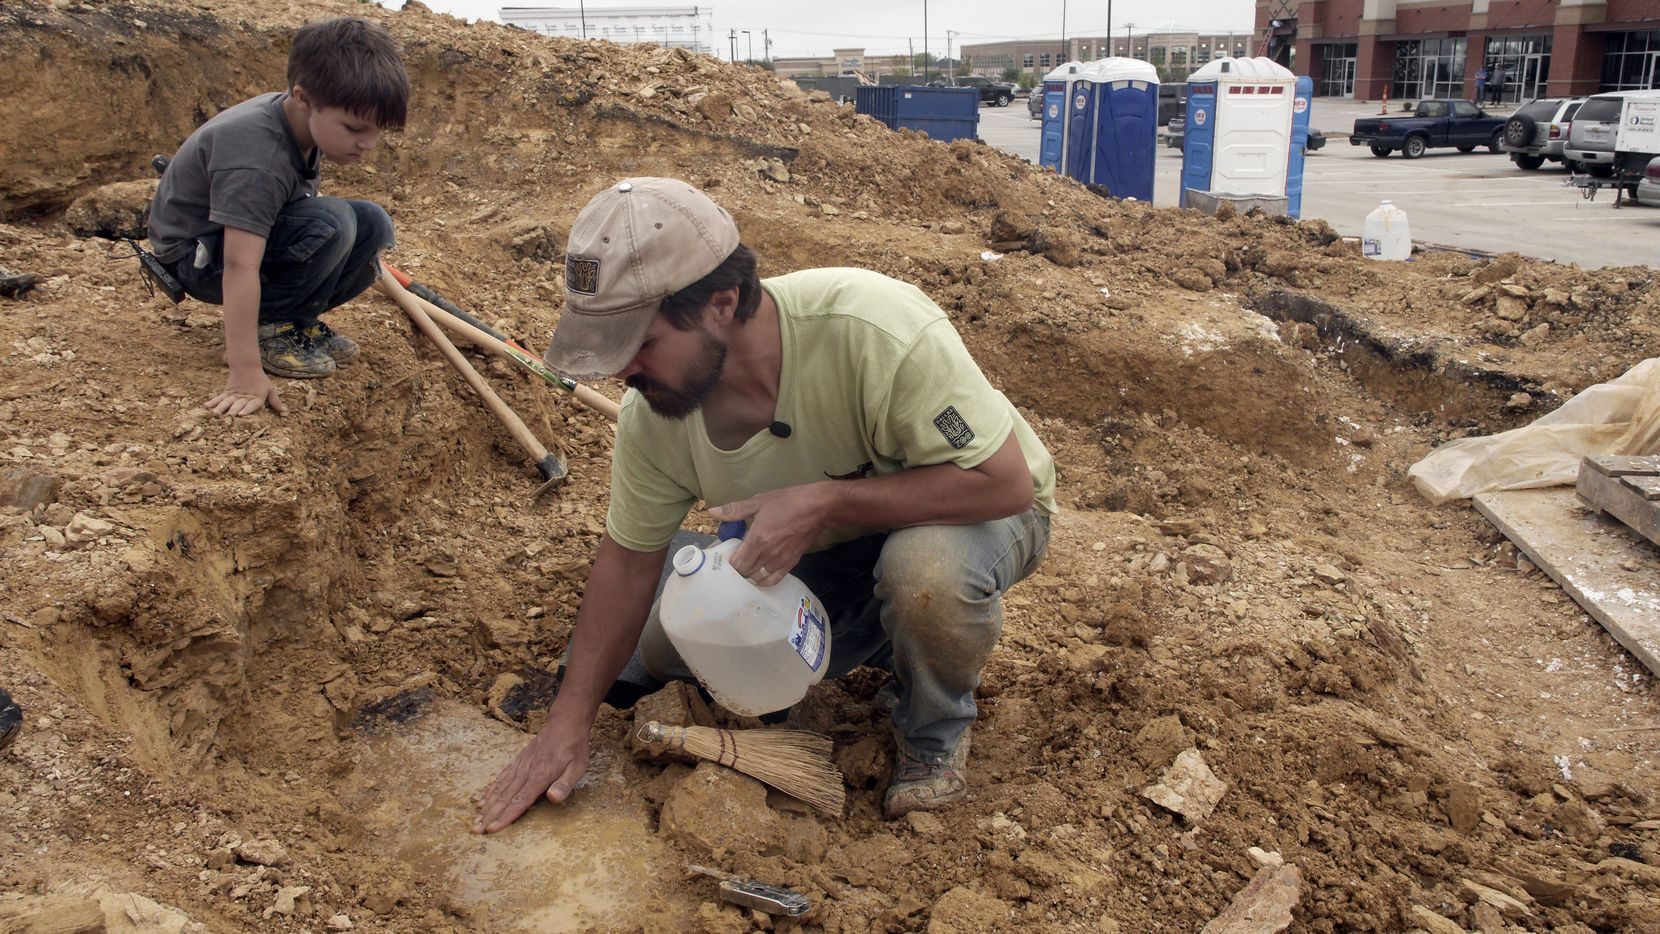 Five-year-old Wylie Brys and his father, Dallas zookeeper Tim Brys, were still looking for fossils Tuesday at the dig site in Mansfield.